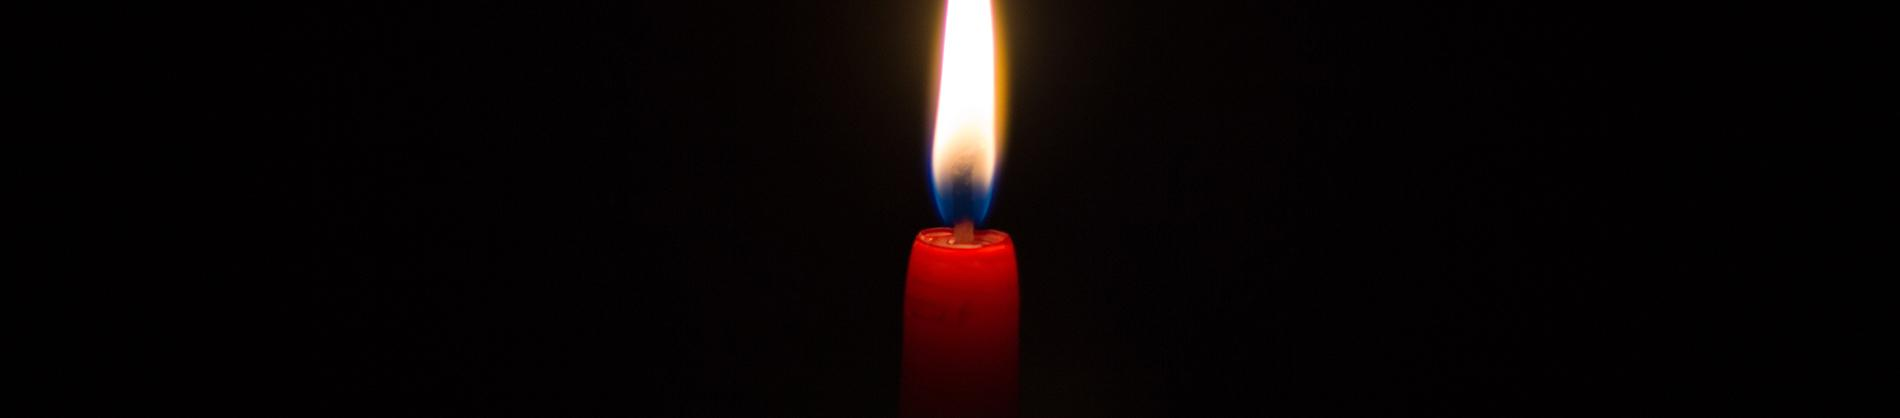 One lit red candle in a dark room